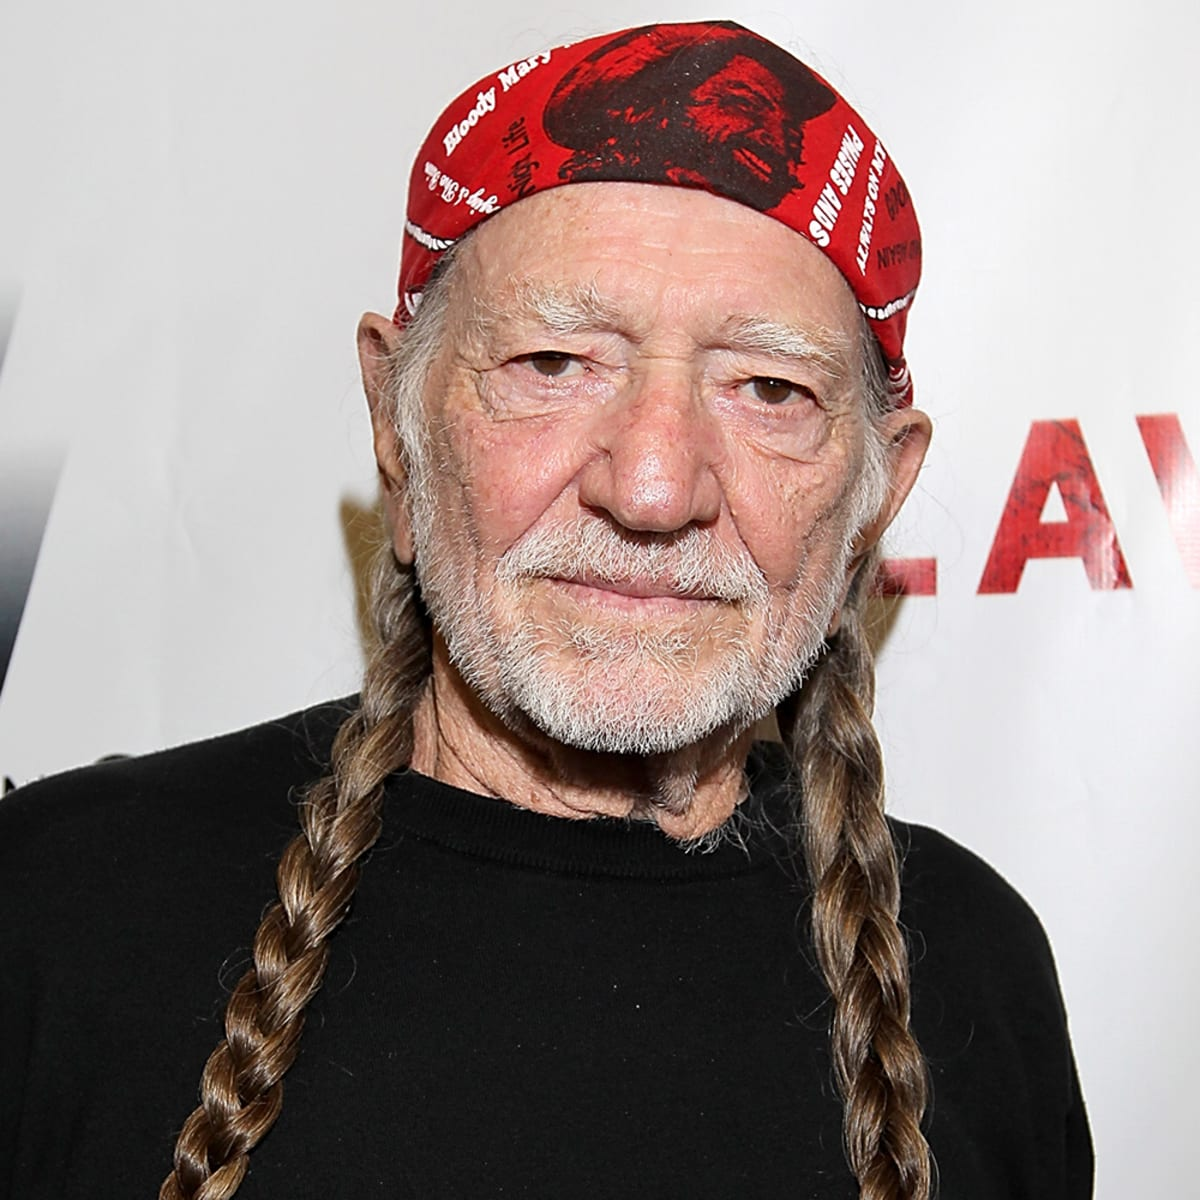 Willie Nelson - Age, Songs & Family - Biography